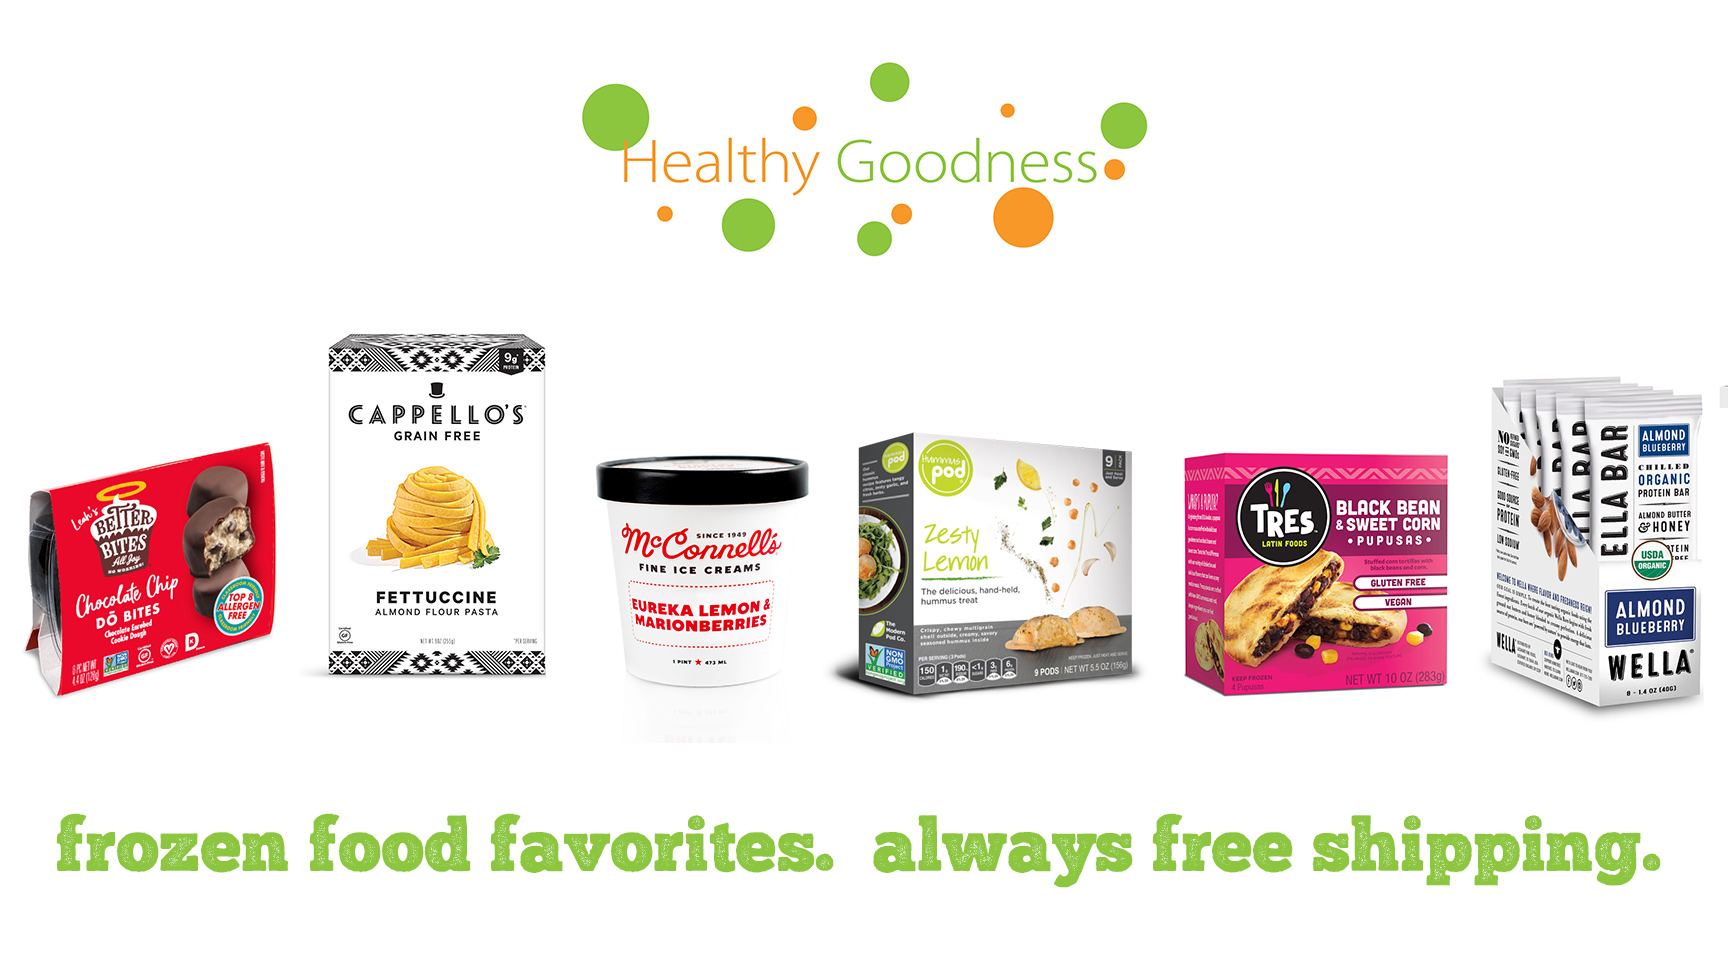 Healthy Goodness has your frozen food favorites, which always ship for free.